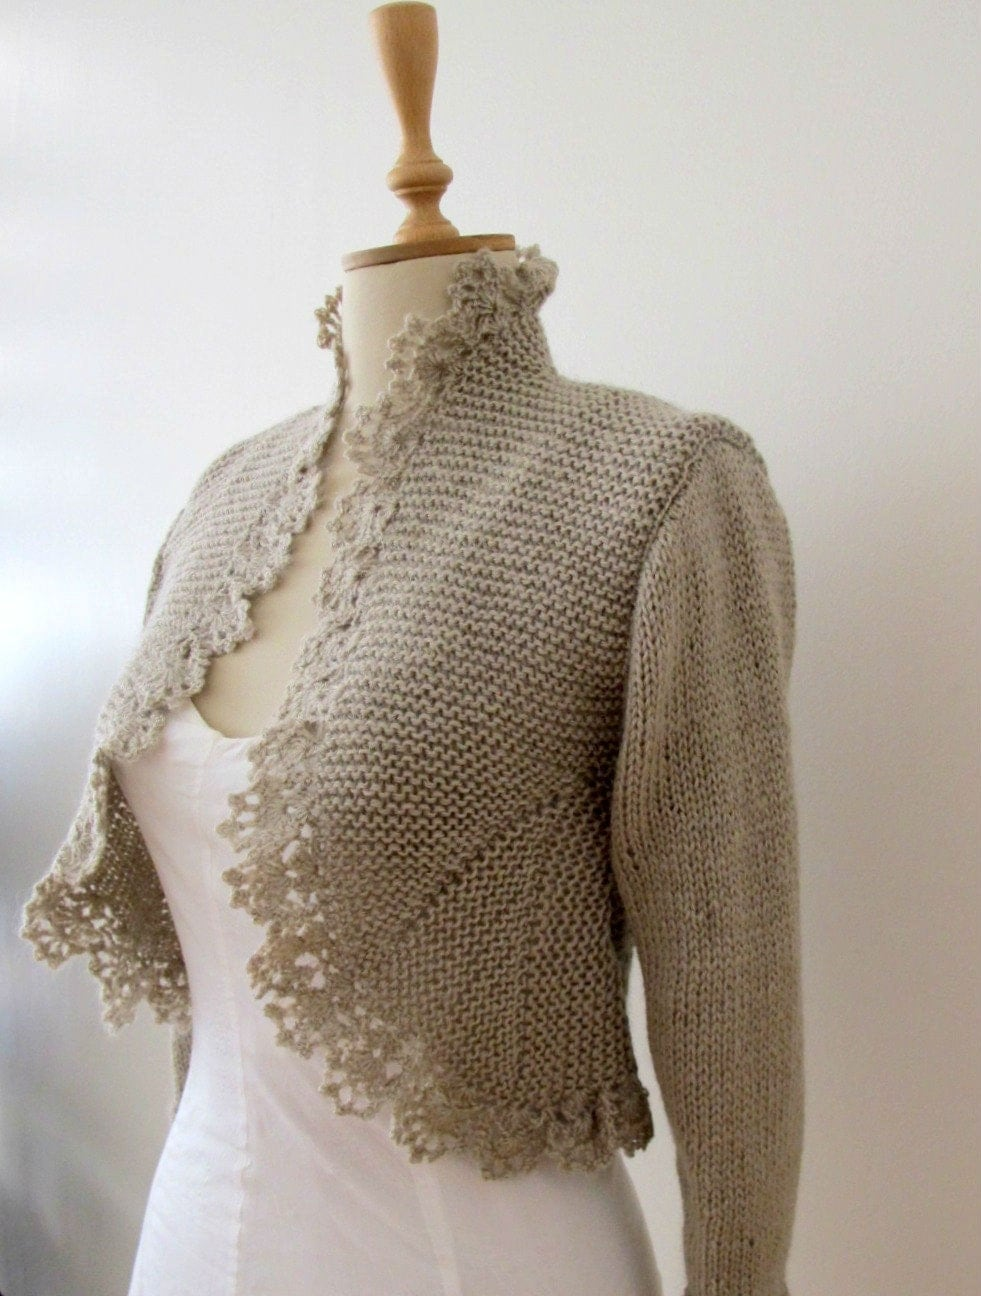 Knitting Patterns For Cardigan Sweaters : Hand Knit Sweater Knitting Knitted Cardigan by crochetbutterfly